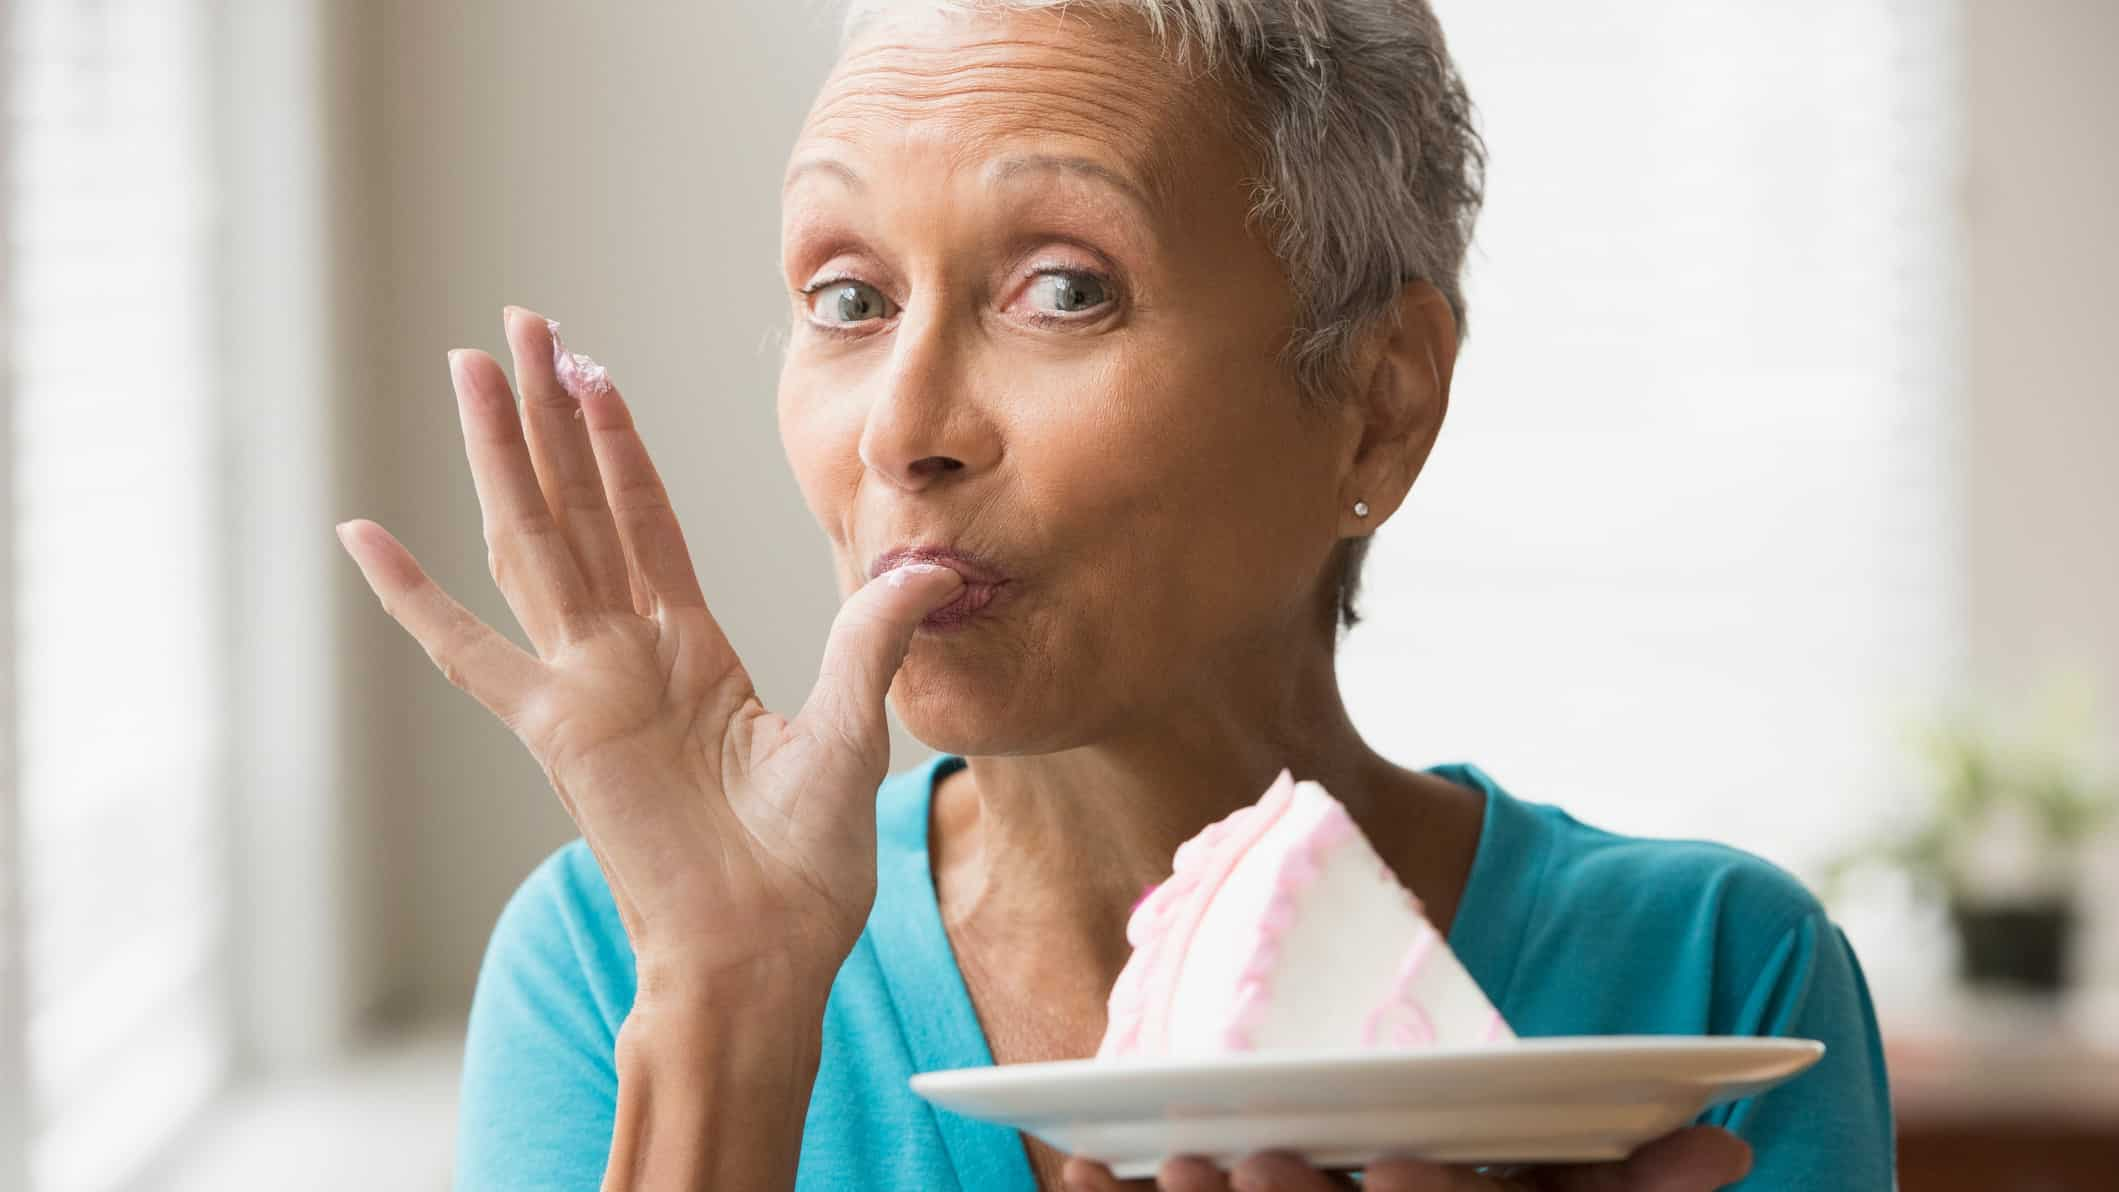 A mature woman hold a plate of cake, licks her thumb, indicating a share price dynamic of 'have your cake and eat it too'